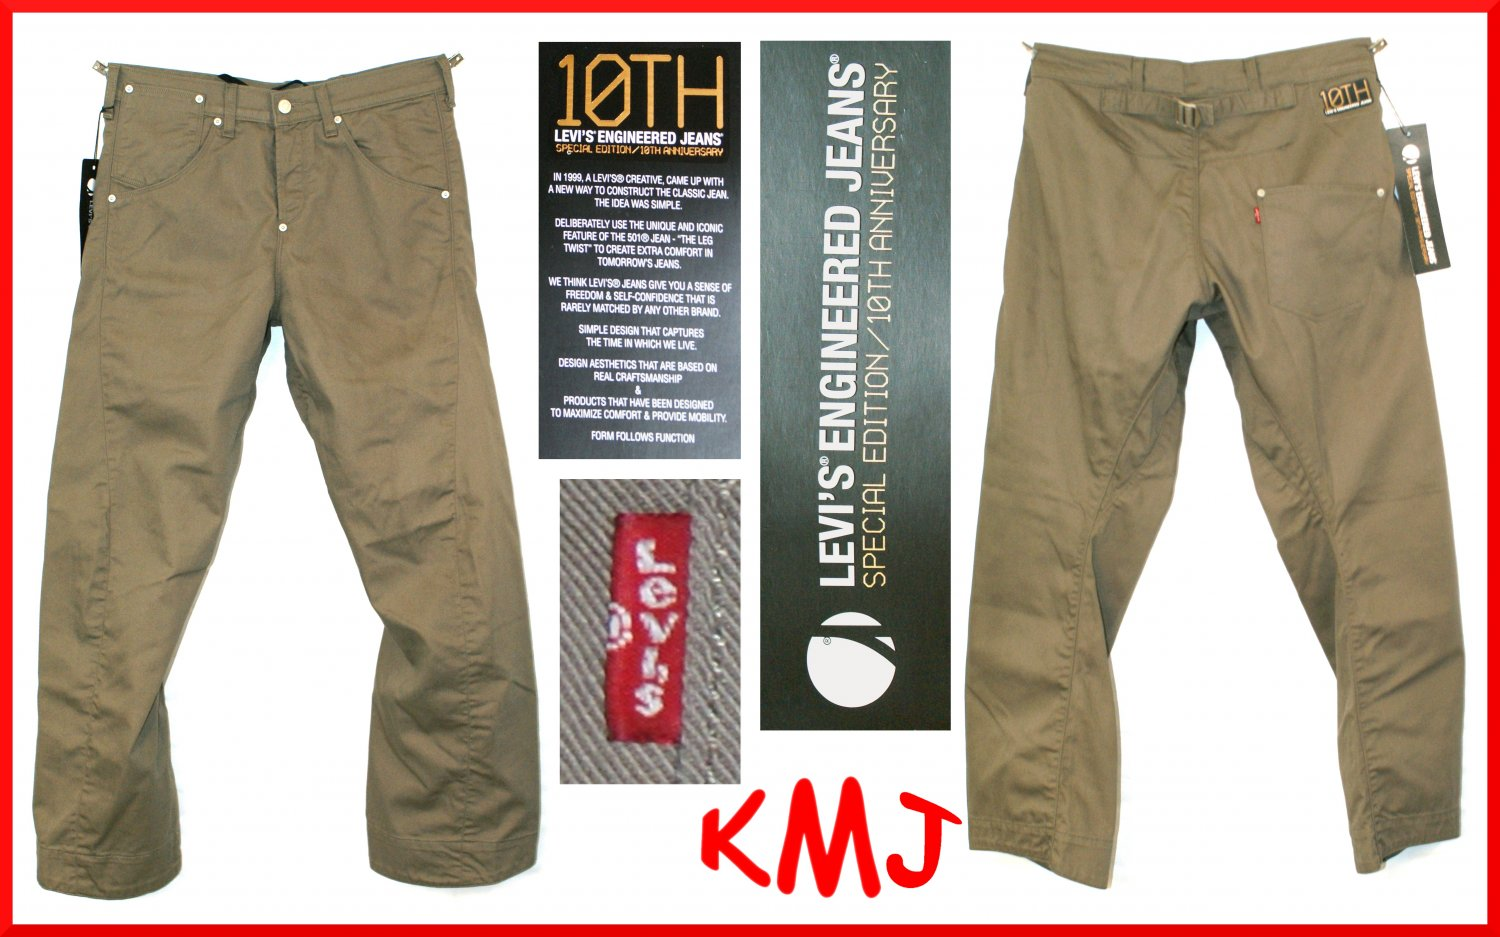 "LEVI'S ENGINEERED 10th ANNIVERSARY SPECIAL EDITION ""TOUGH COOKIE"" CINCH-BACK TWILL JEANS W27 L32"